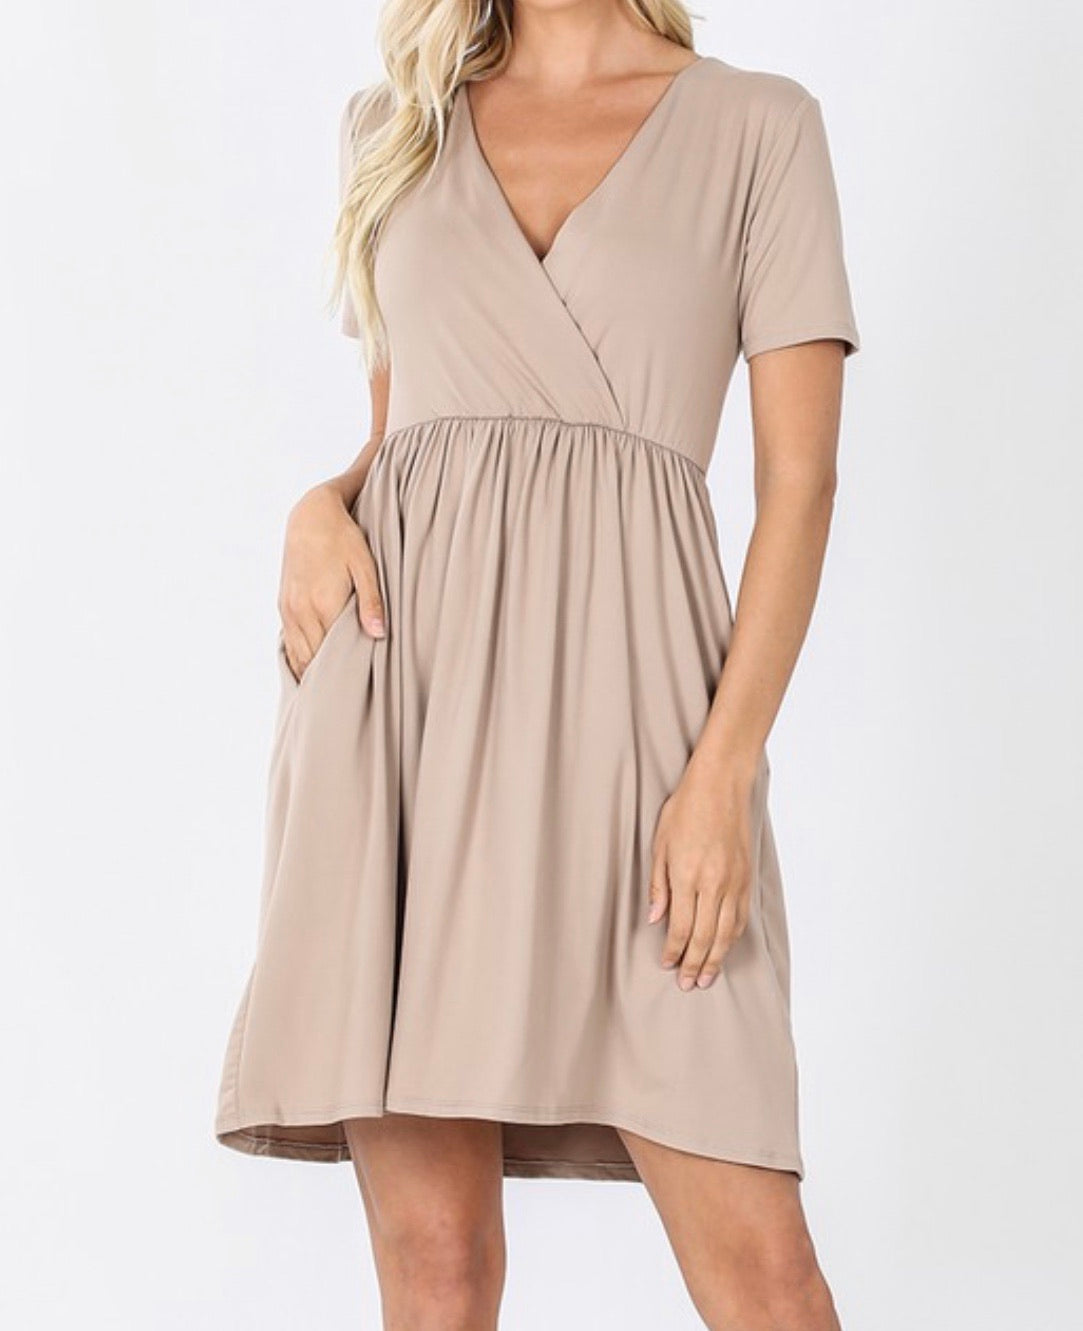 Brushed Mocha Dress